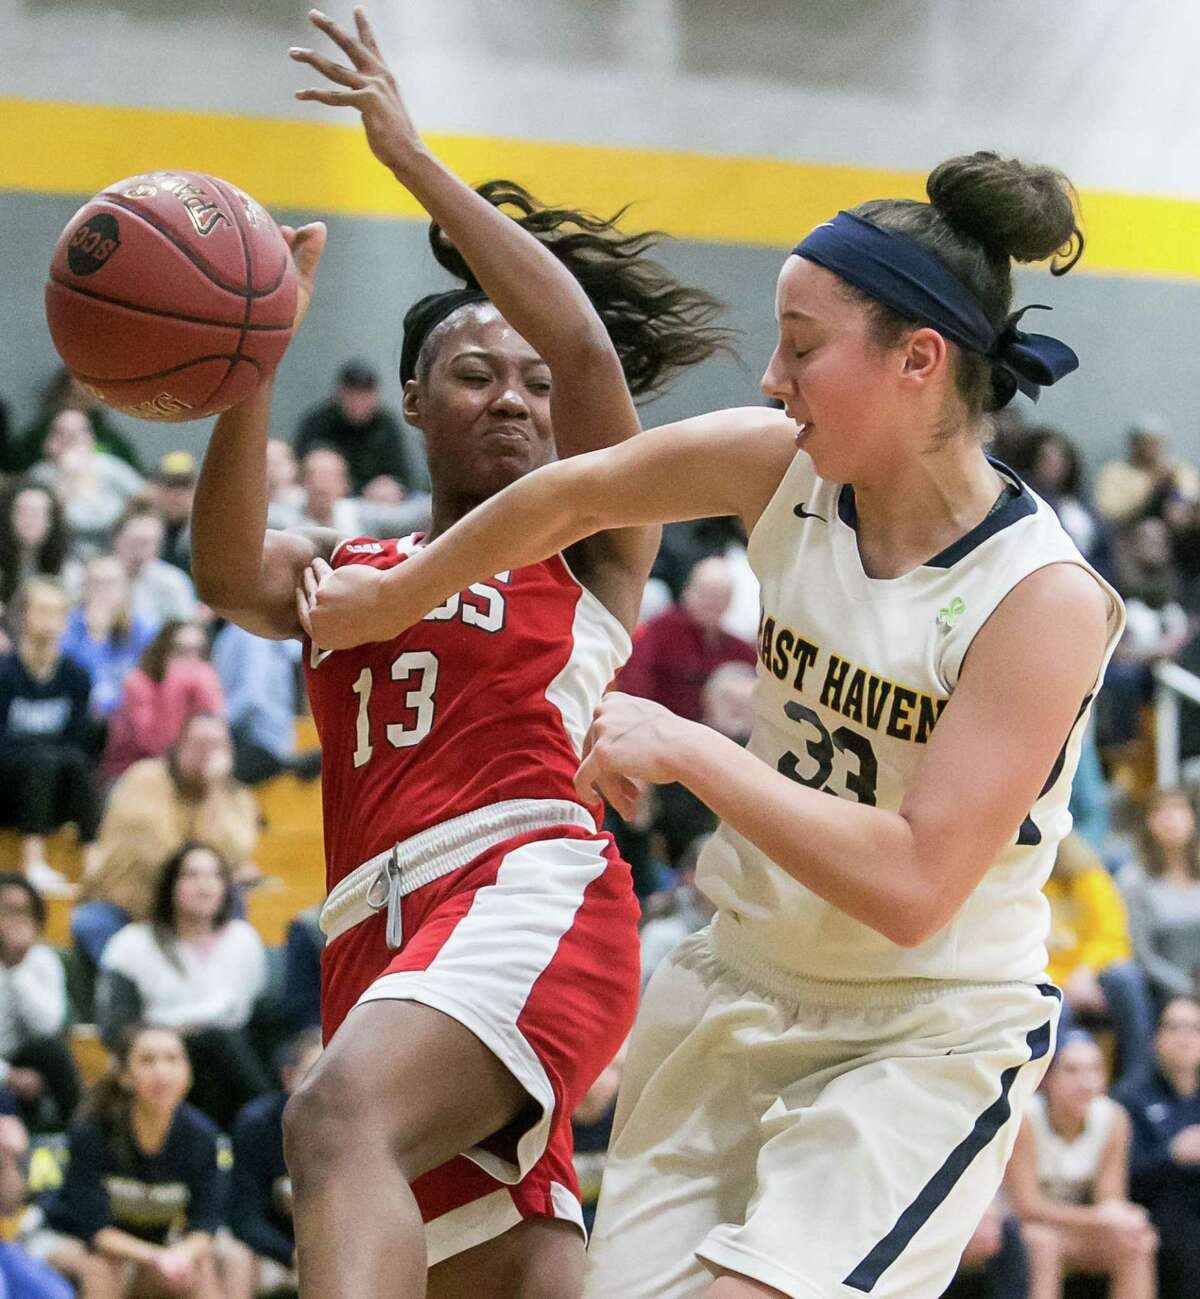 (John Vanacore/For Hearst Connecicut Media) East Haven's Taylor Salato and Cross's Anajija Ricks battle for a rebound during the SCC Semi Final game Monday night in Milford.